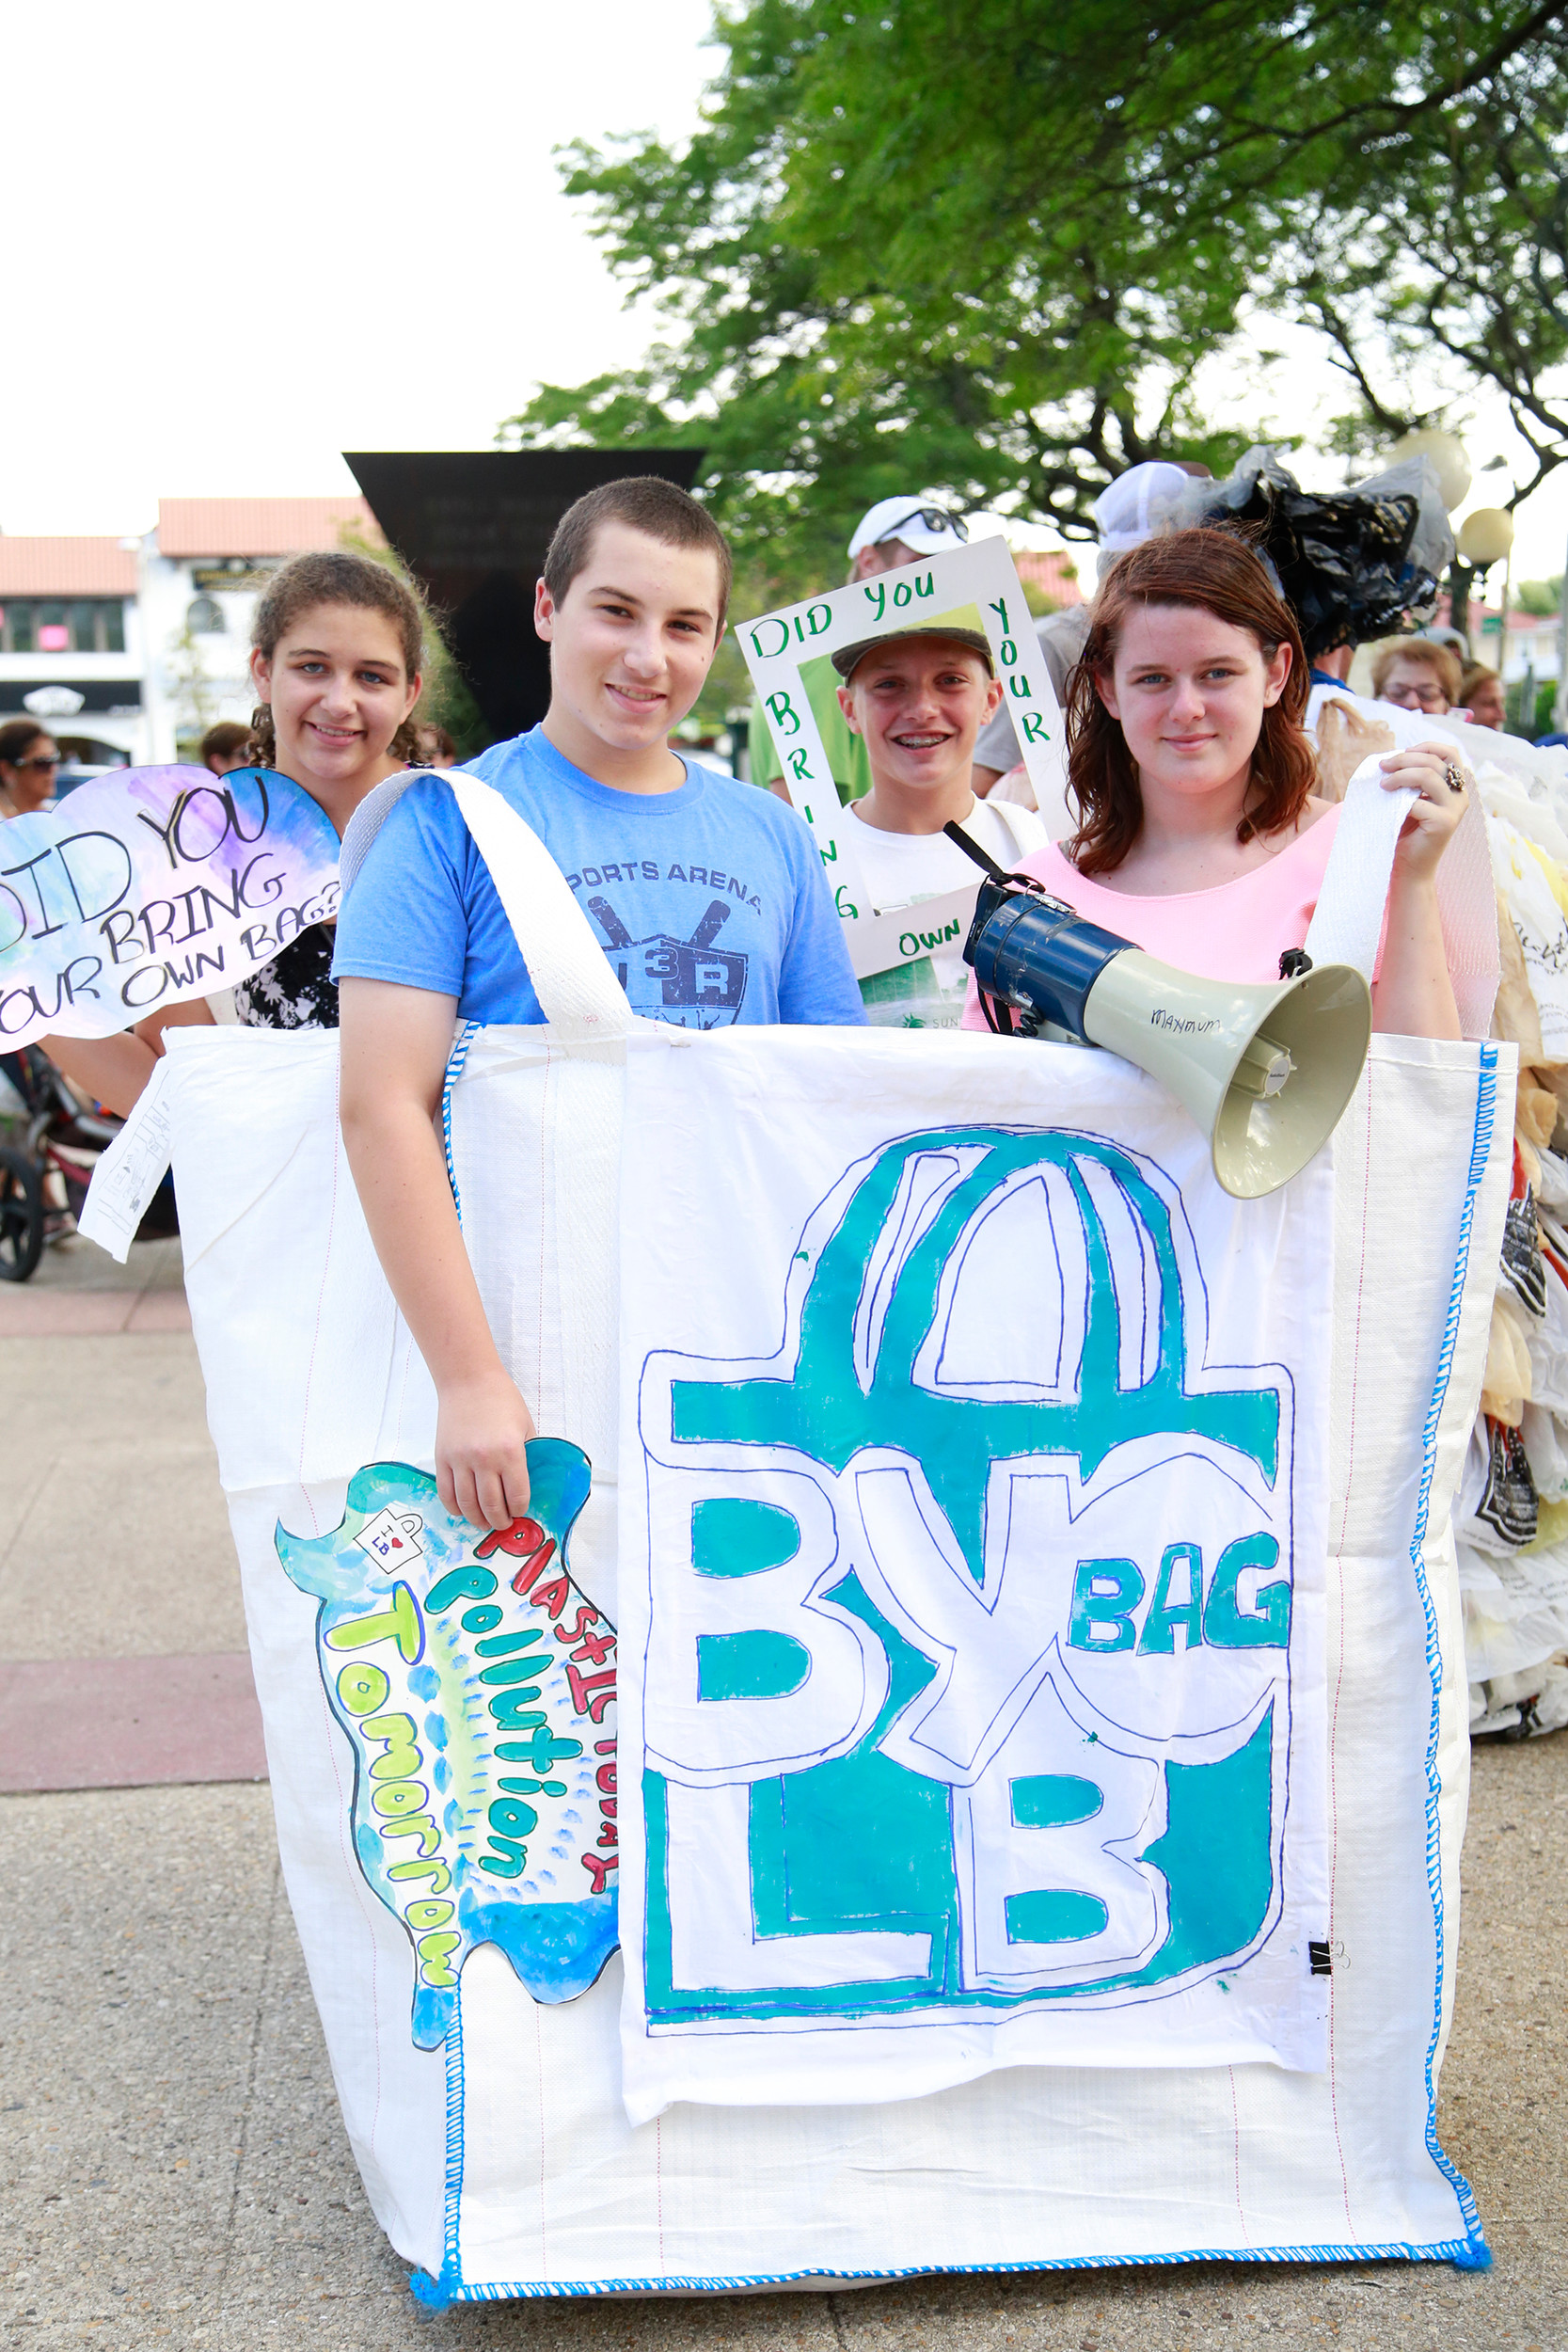 Skyy Crowley, far left, Matthew Amato, Griffen Schimmel and Jessica Carreiro supported a bring-your-own-bag initiative.